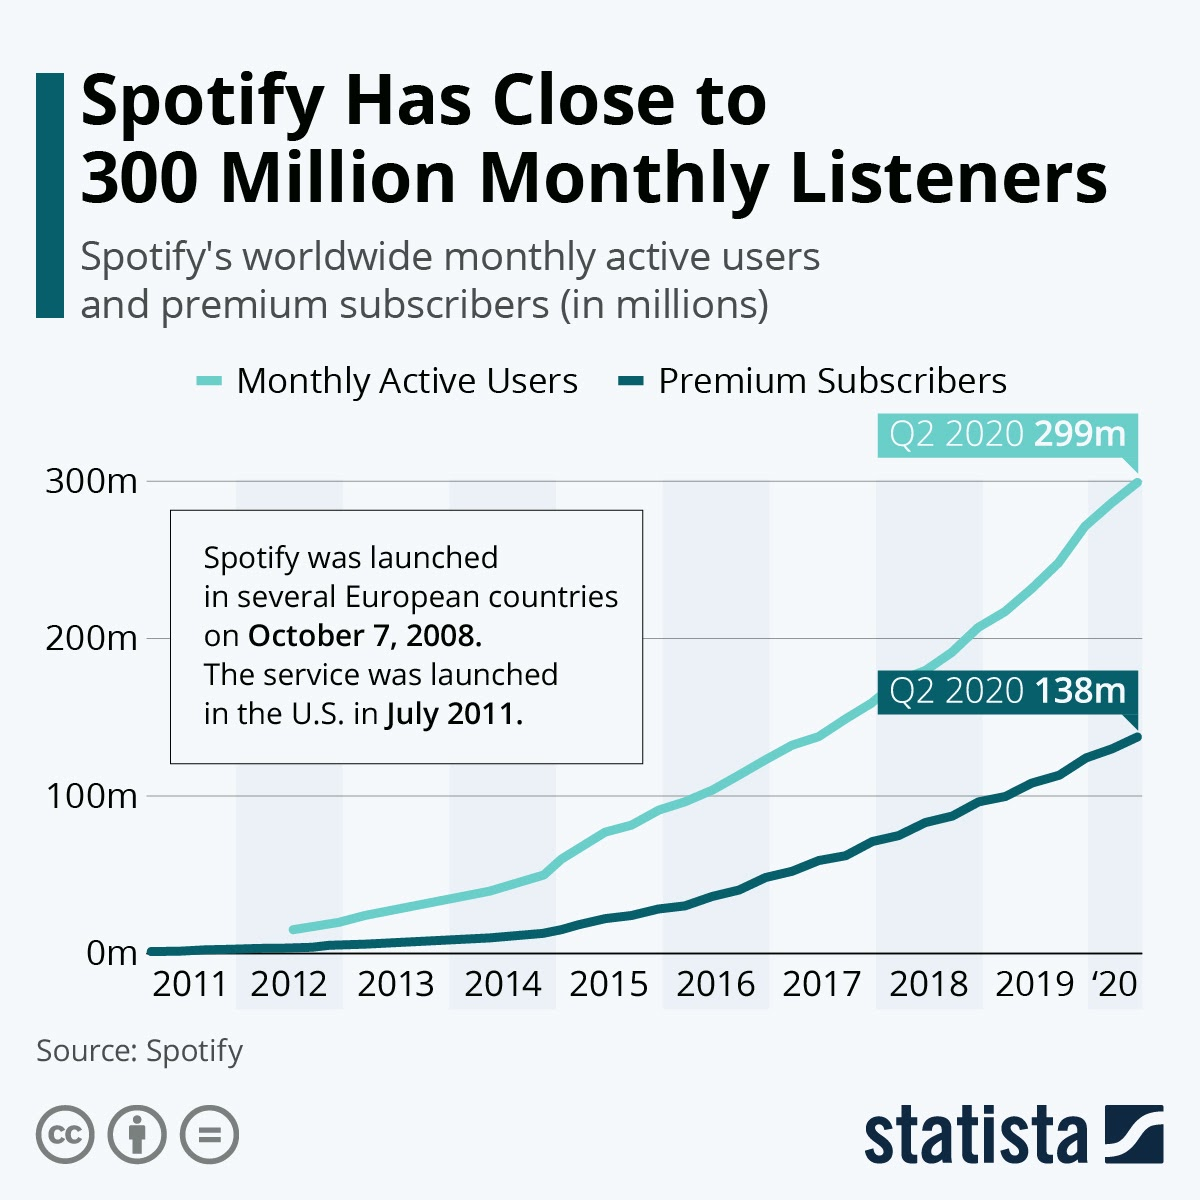 Spotify Has Close to 300 Million Monthly Listeners # Infographic